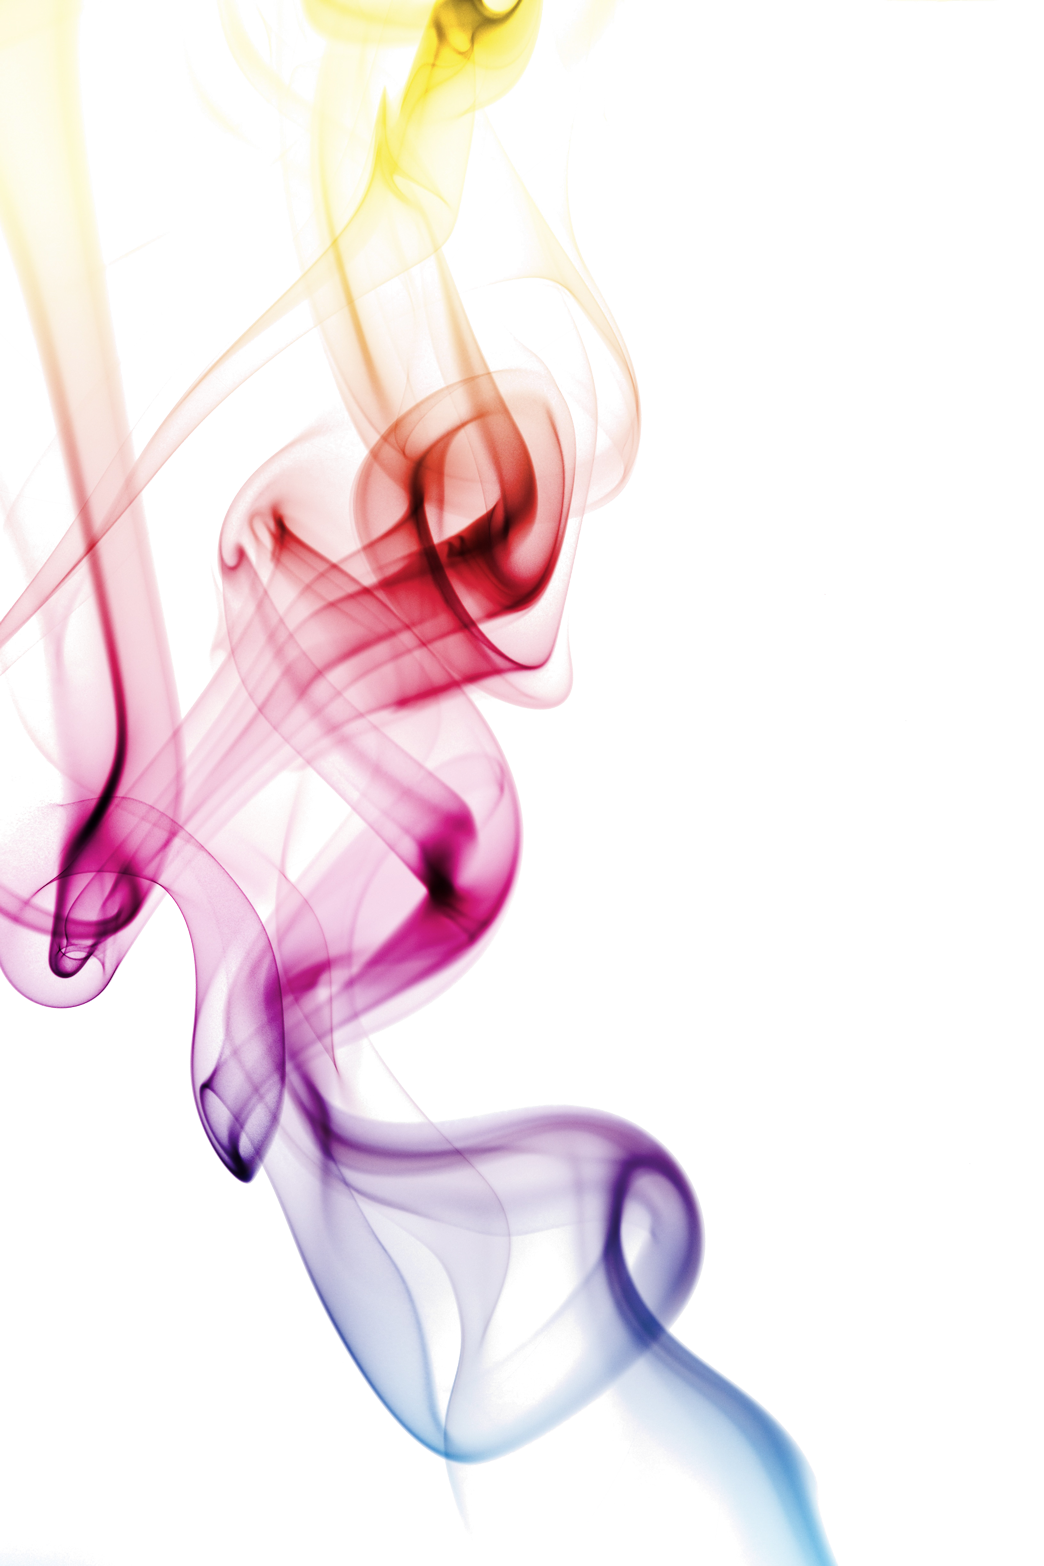 Cigarette smoke transparent png. Colorful image best stock